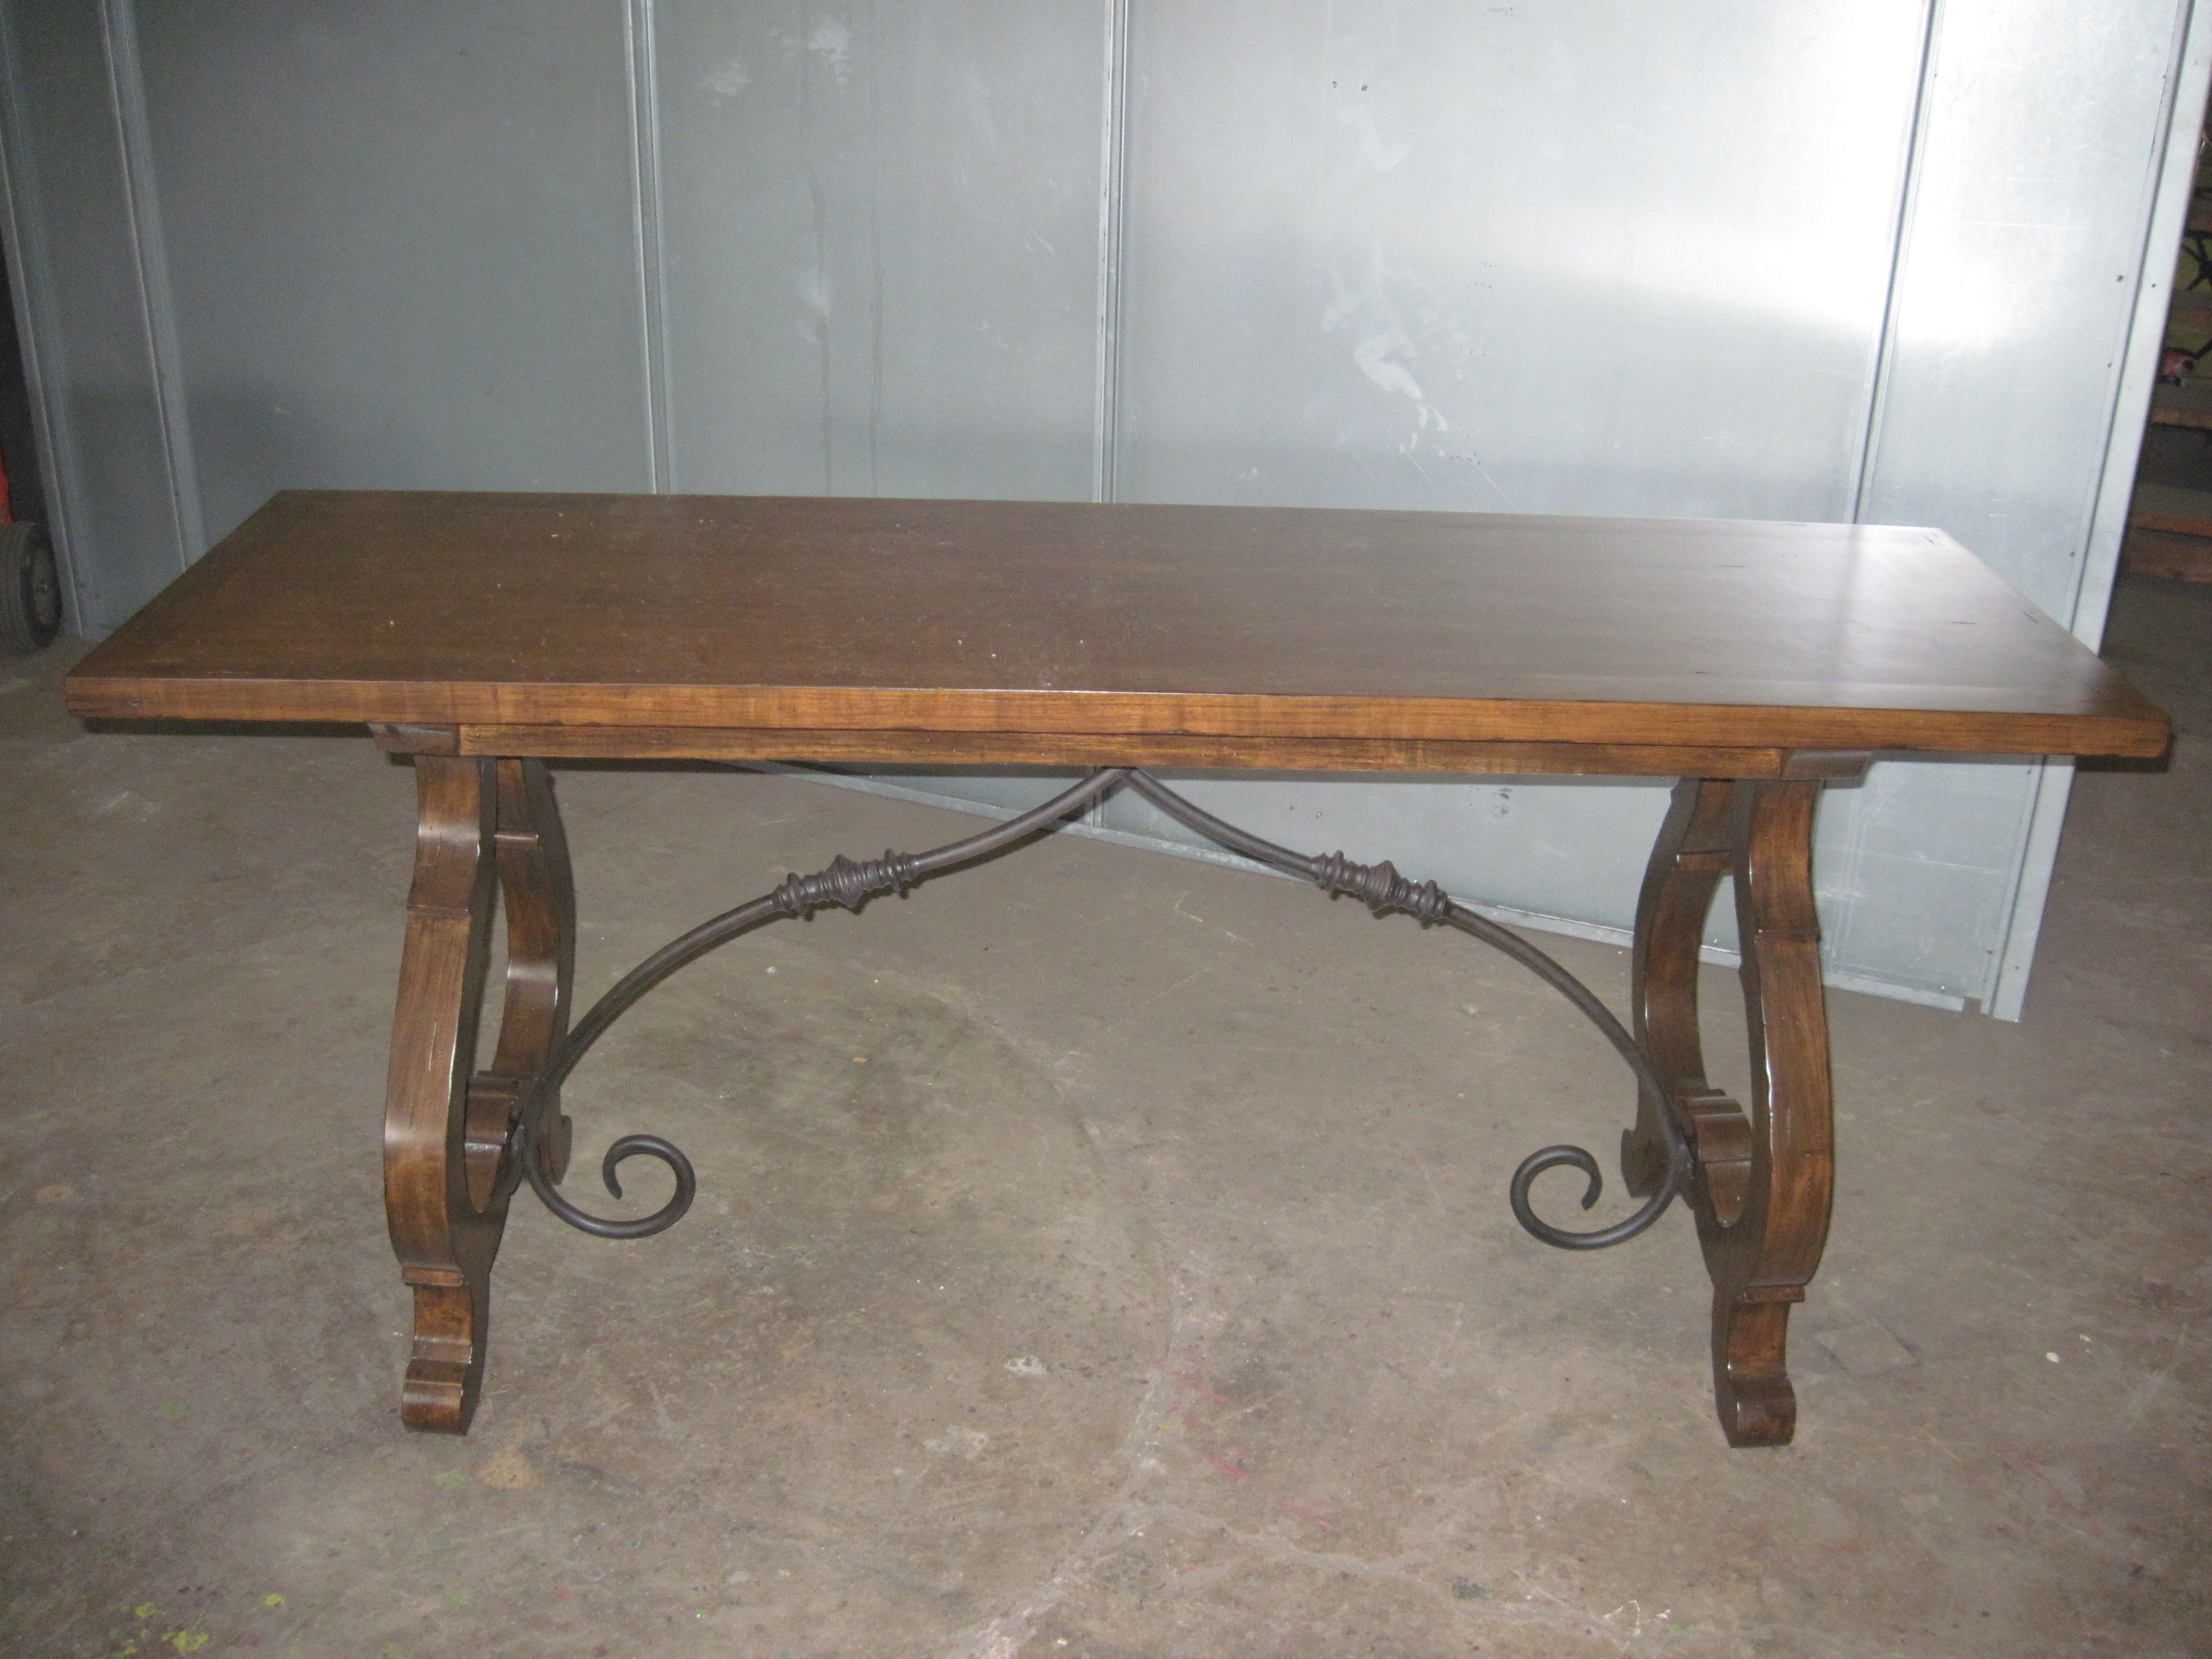 Table Base w/ Forged Iron Stretcher